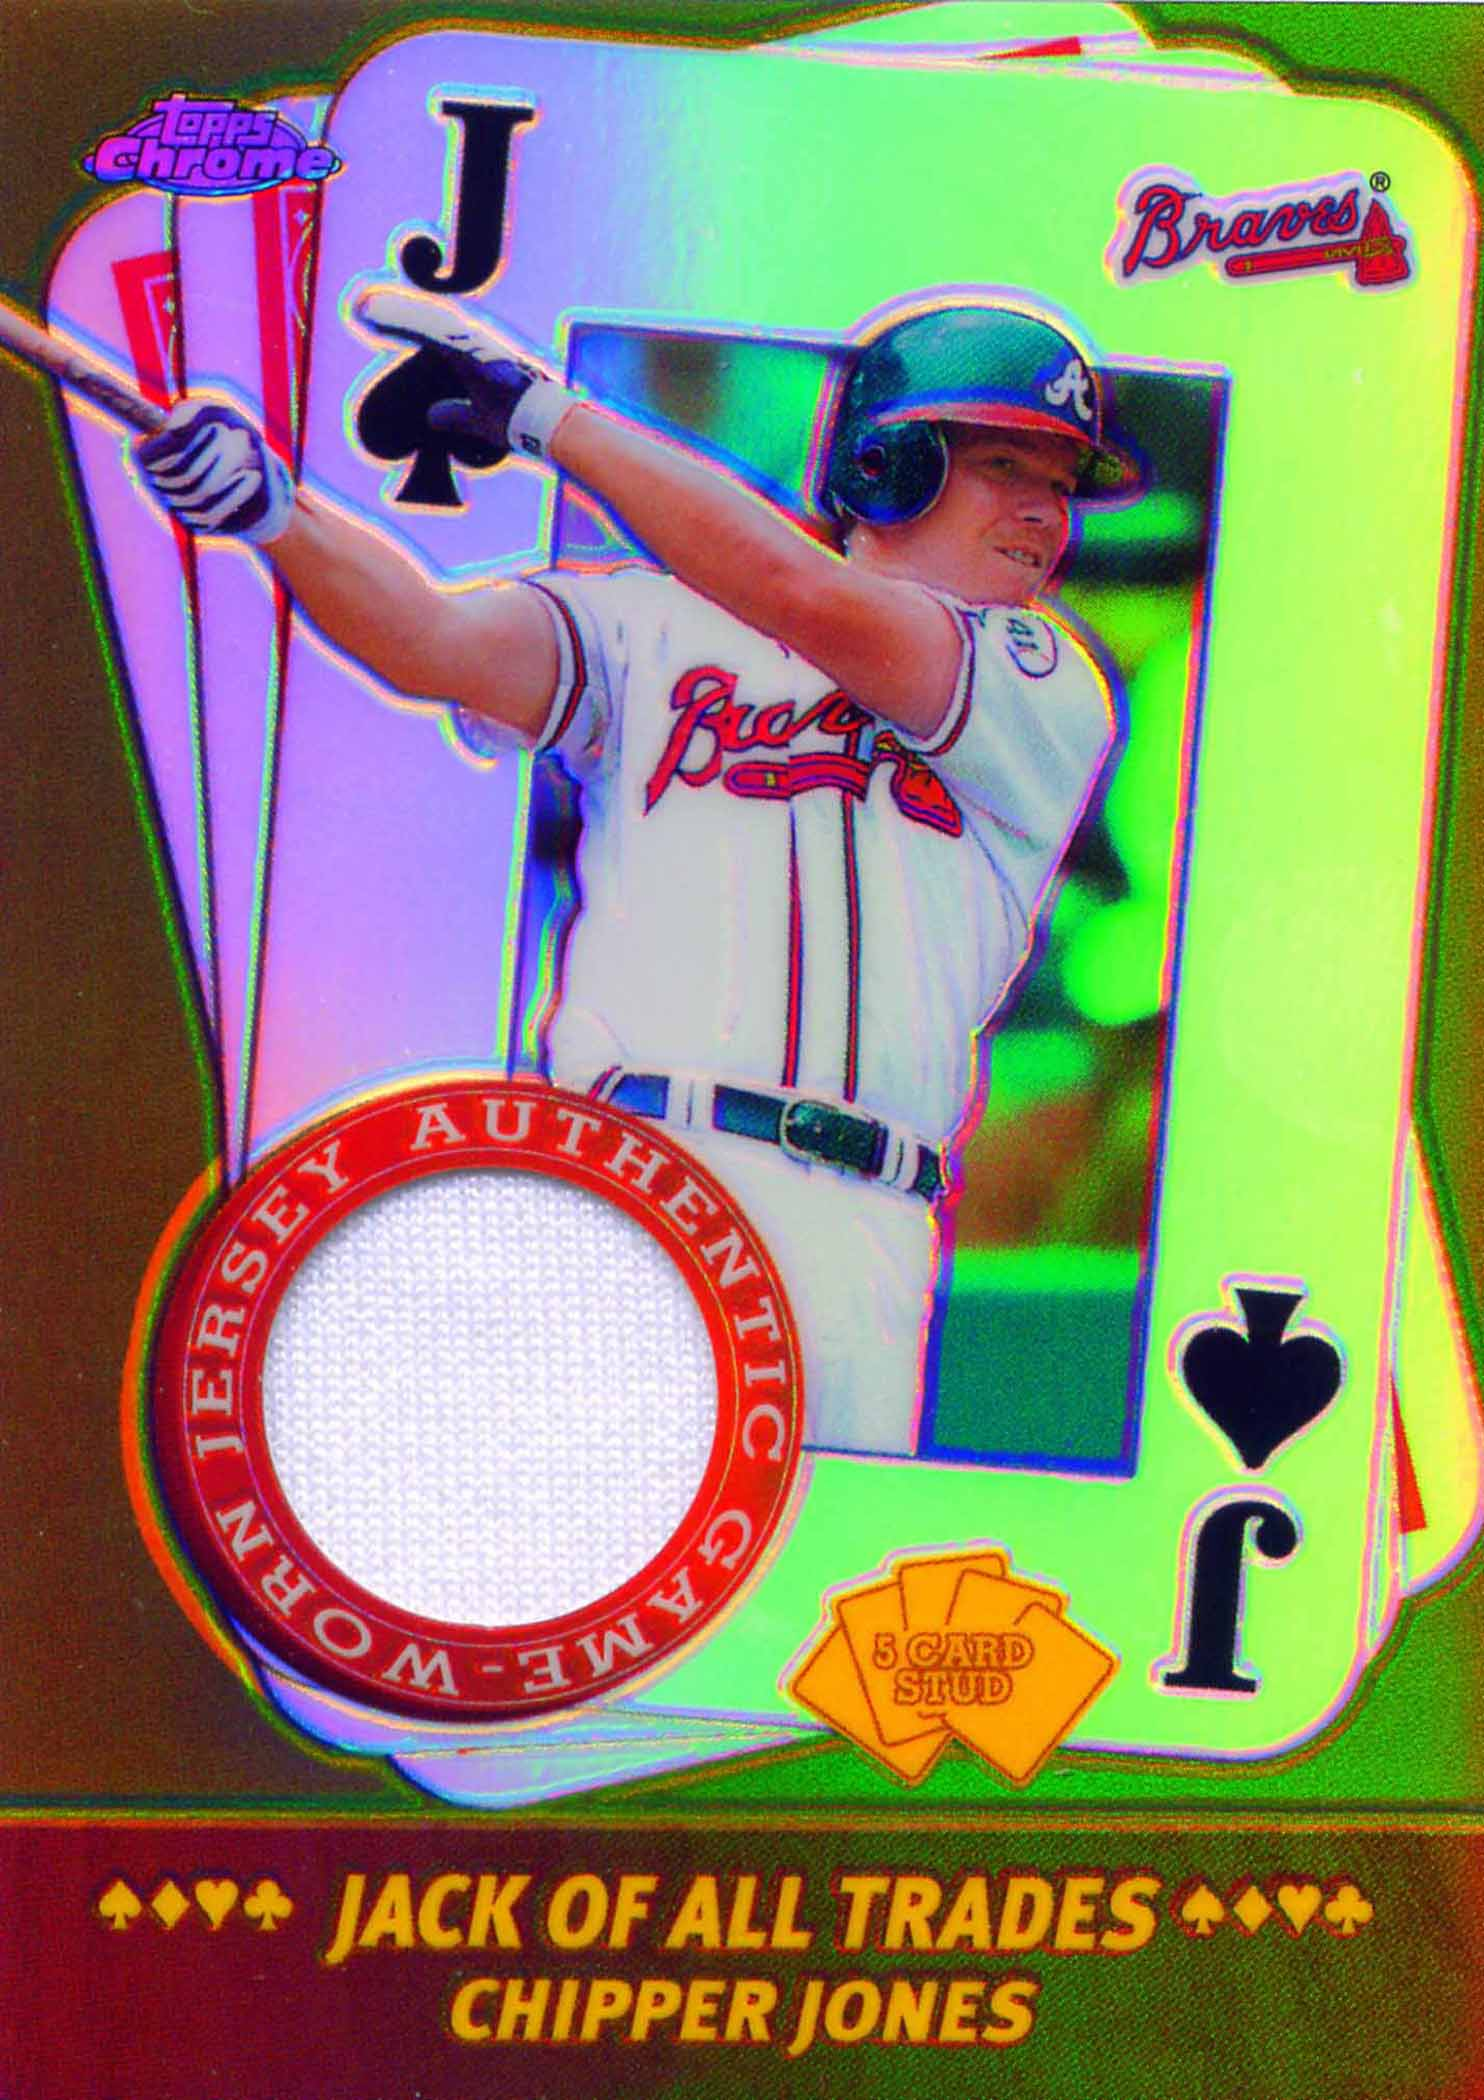 2002 Topps Chrome 5-Card Stud Jack of all Trades Relics Jersey